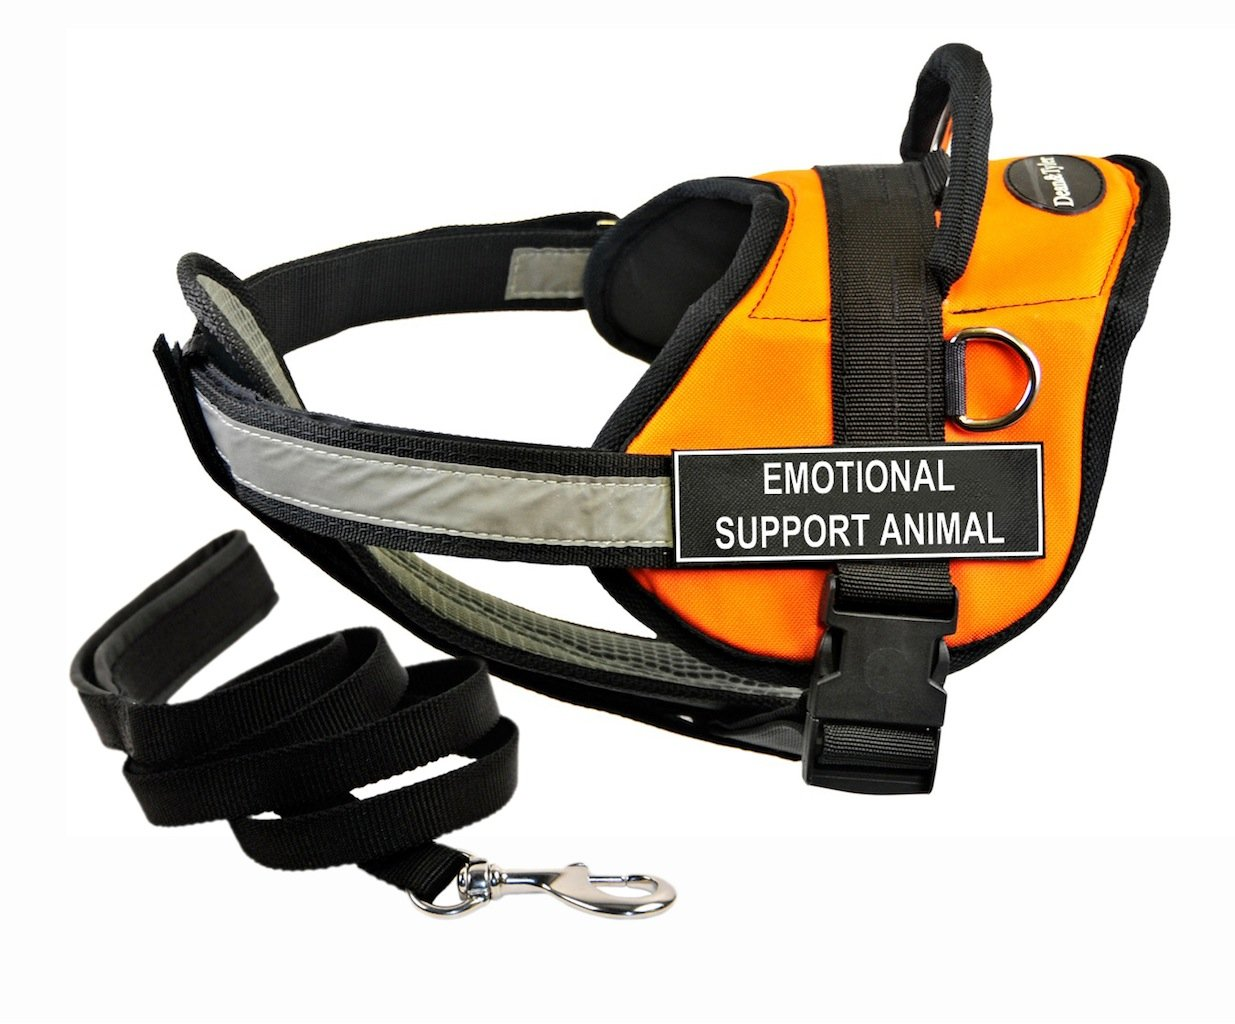 Dean & Tyler's DT Works orange EMOTIONAL SUPPORT ANIMAL Harness with Chest Padding, Medium, and Black 6 ft Padded Puppy Leash.